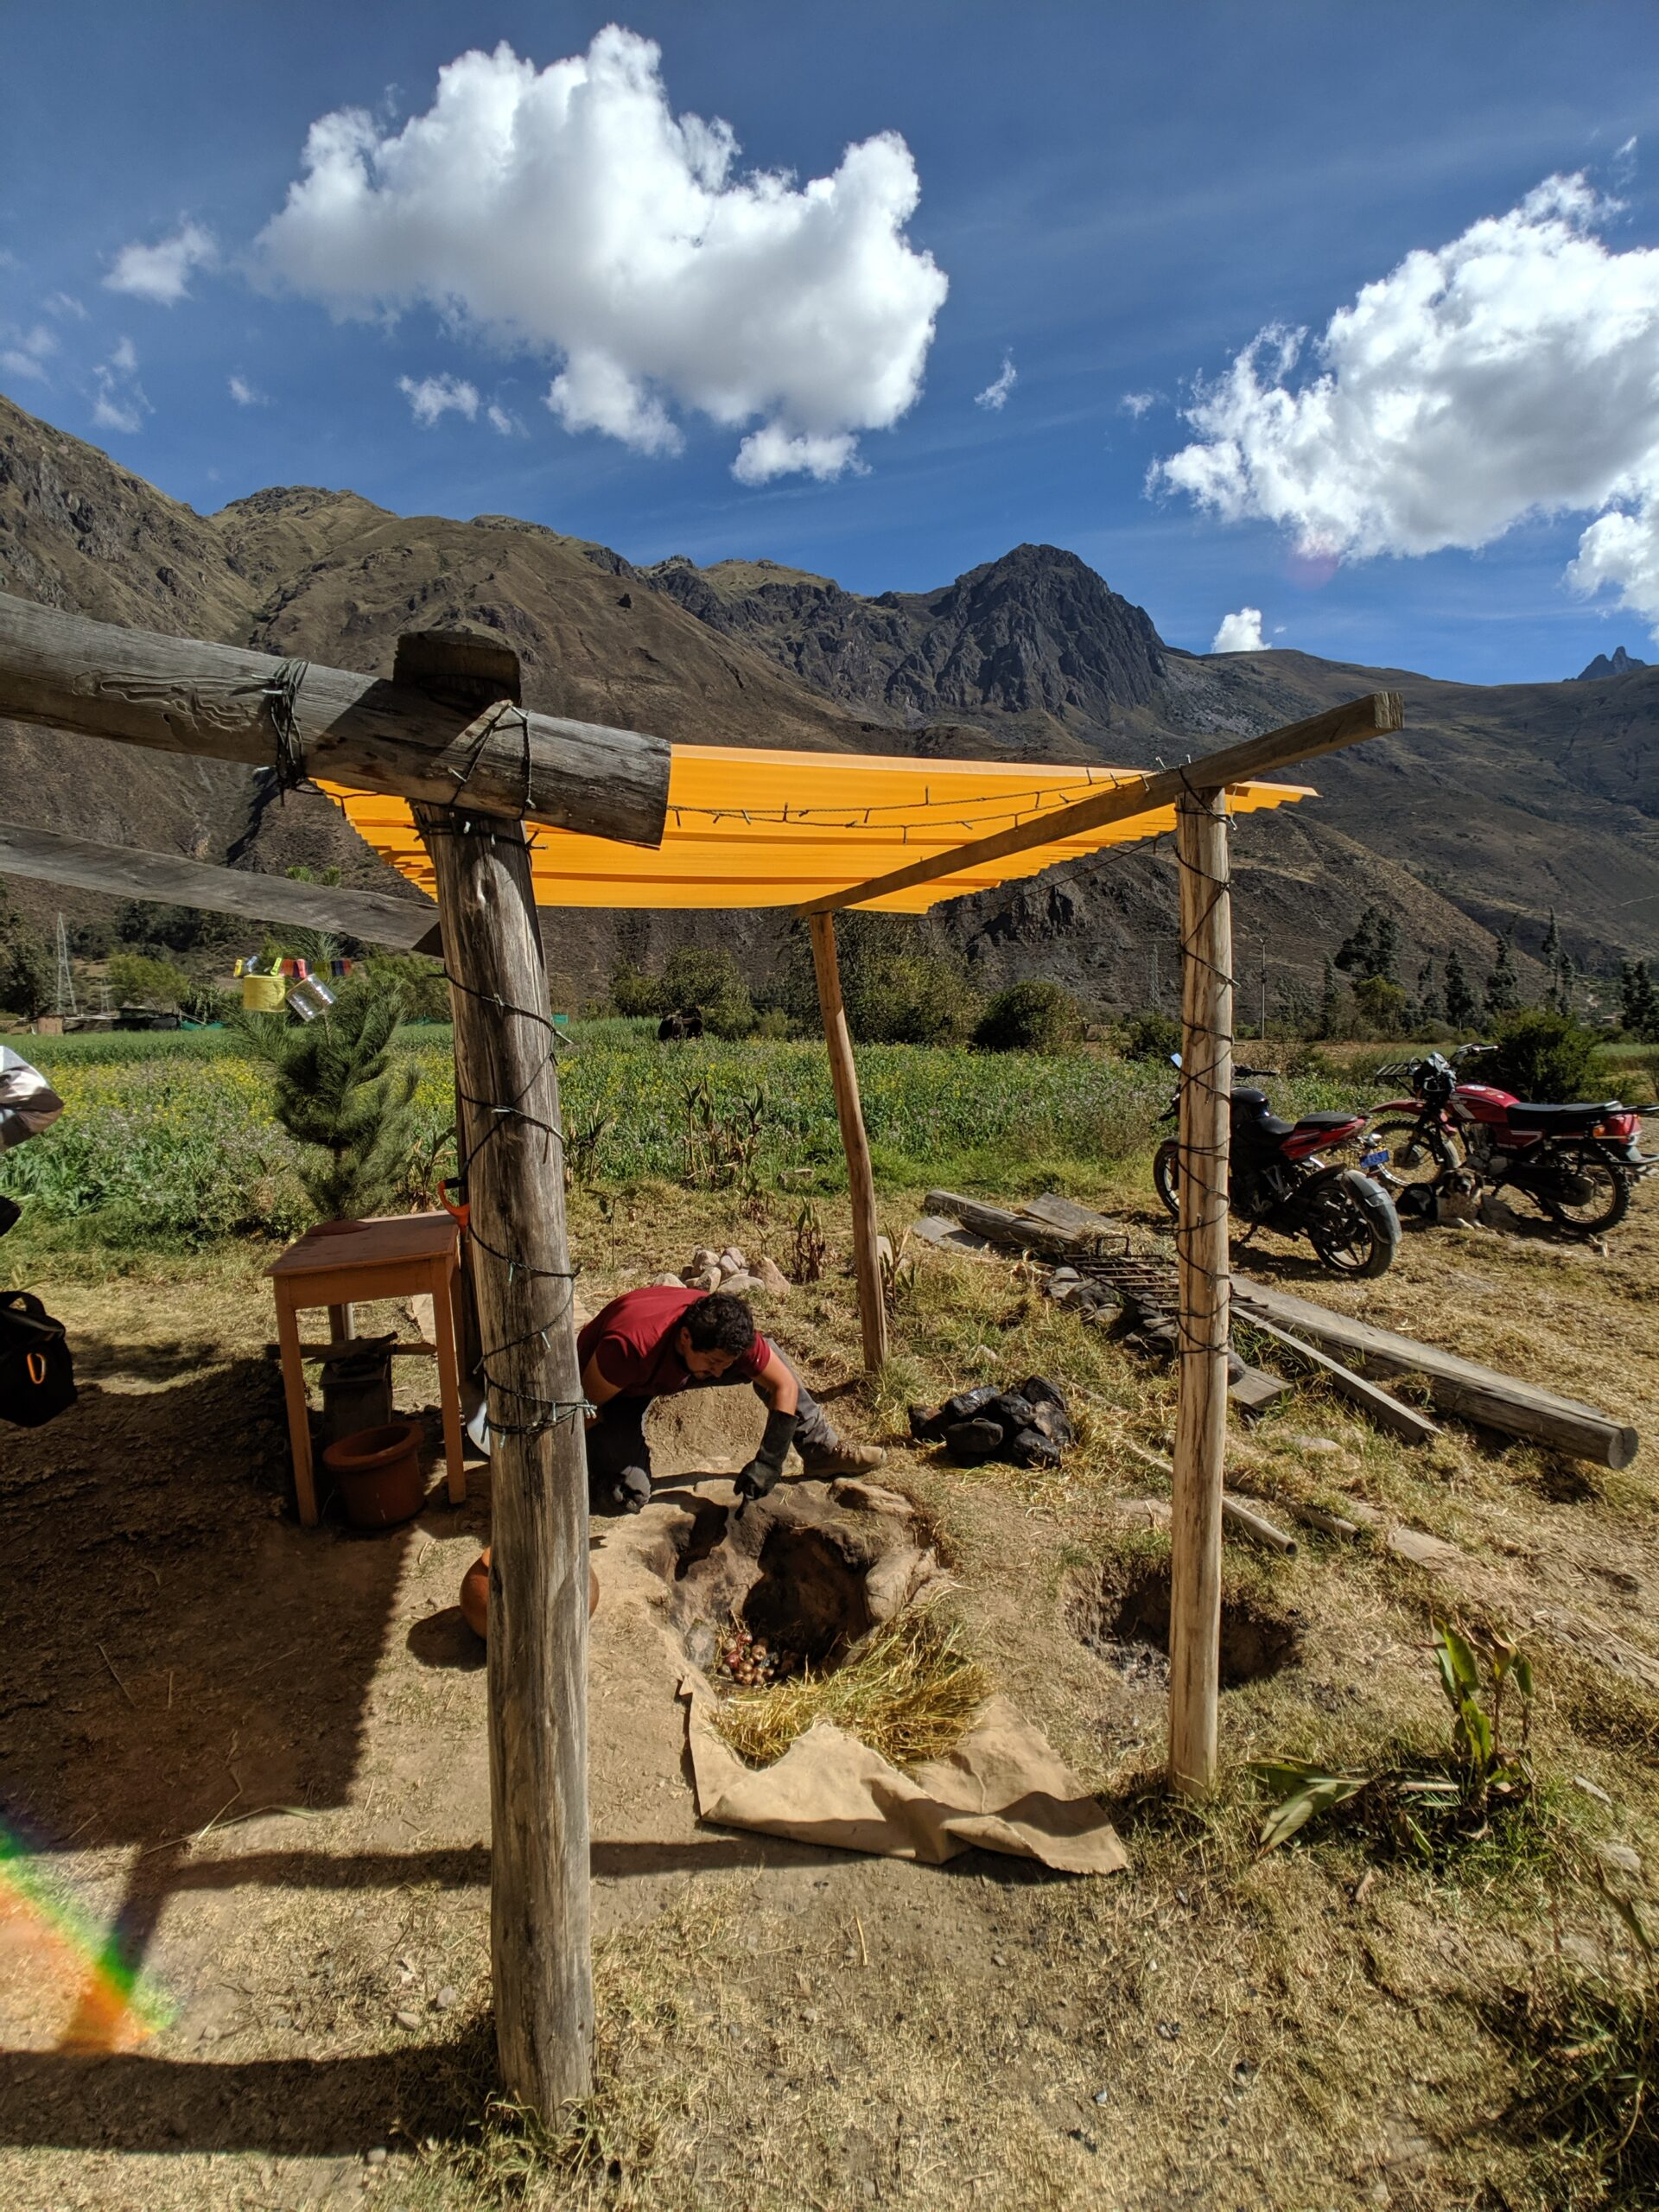 A man works to care for an underground oven under a yellow awning with a backdrop of peruvian mountains.